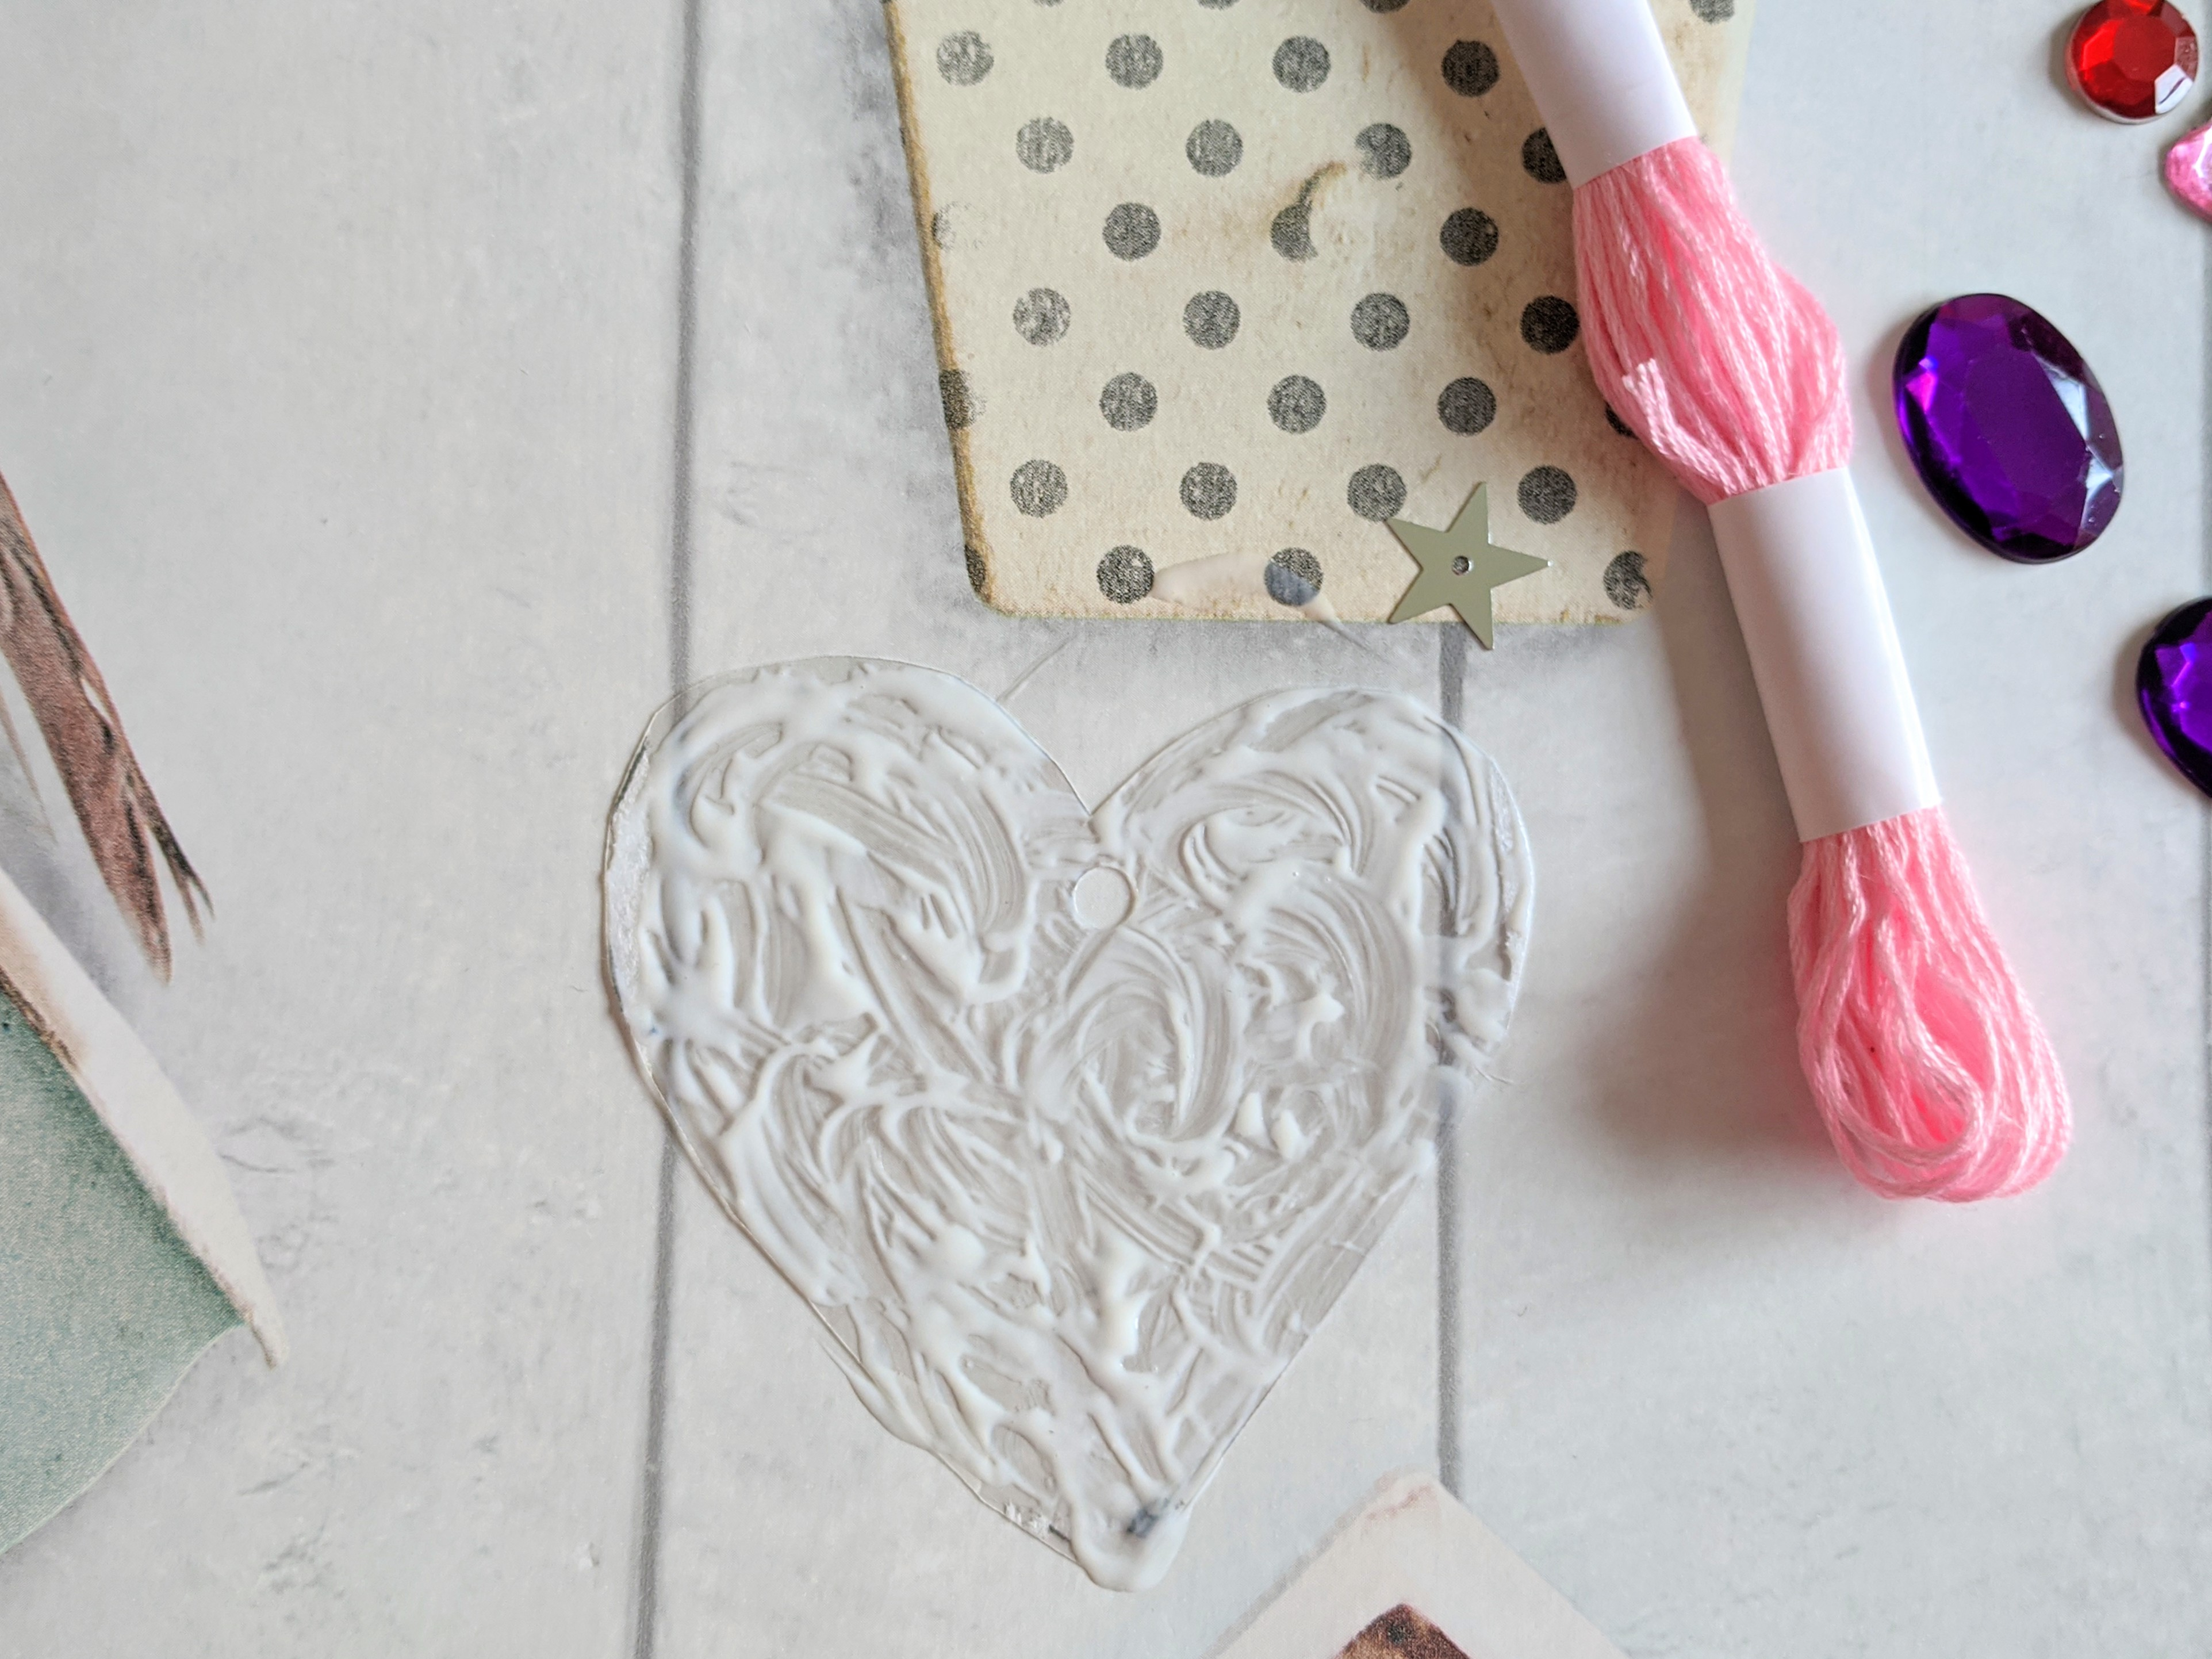 Mums NI Craft Hub - February 2020